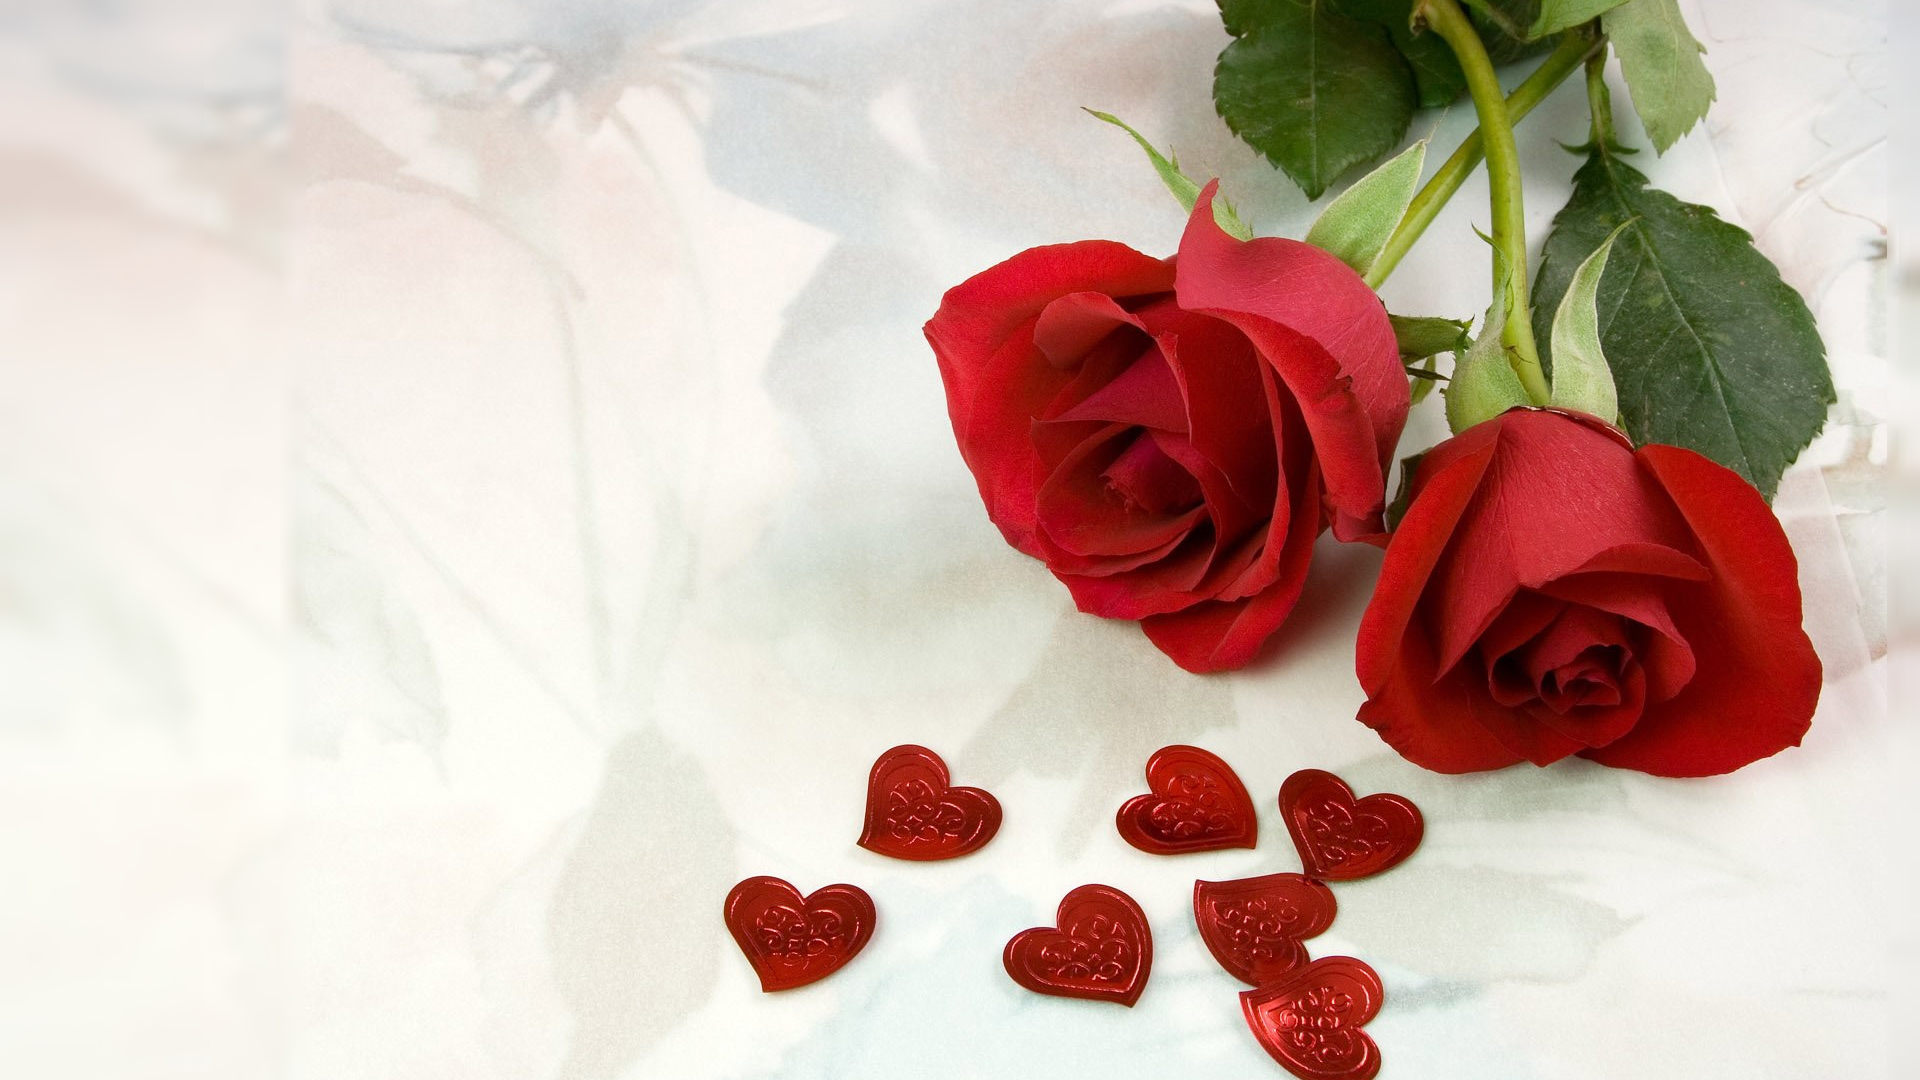 Red Rose Pictures Wallpaper